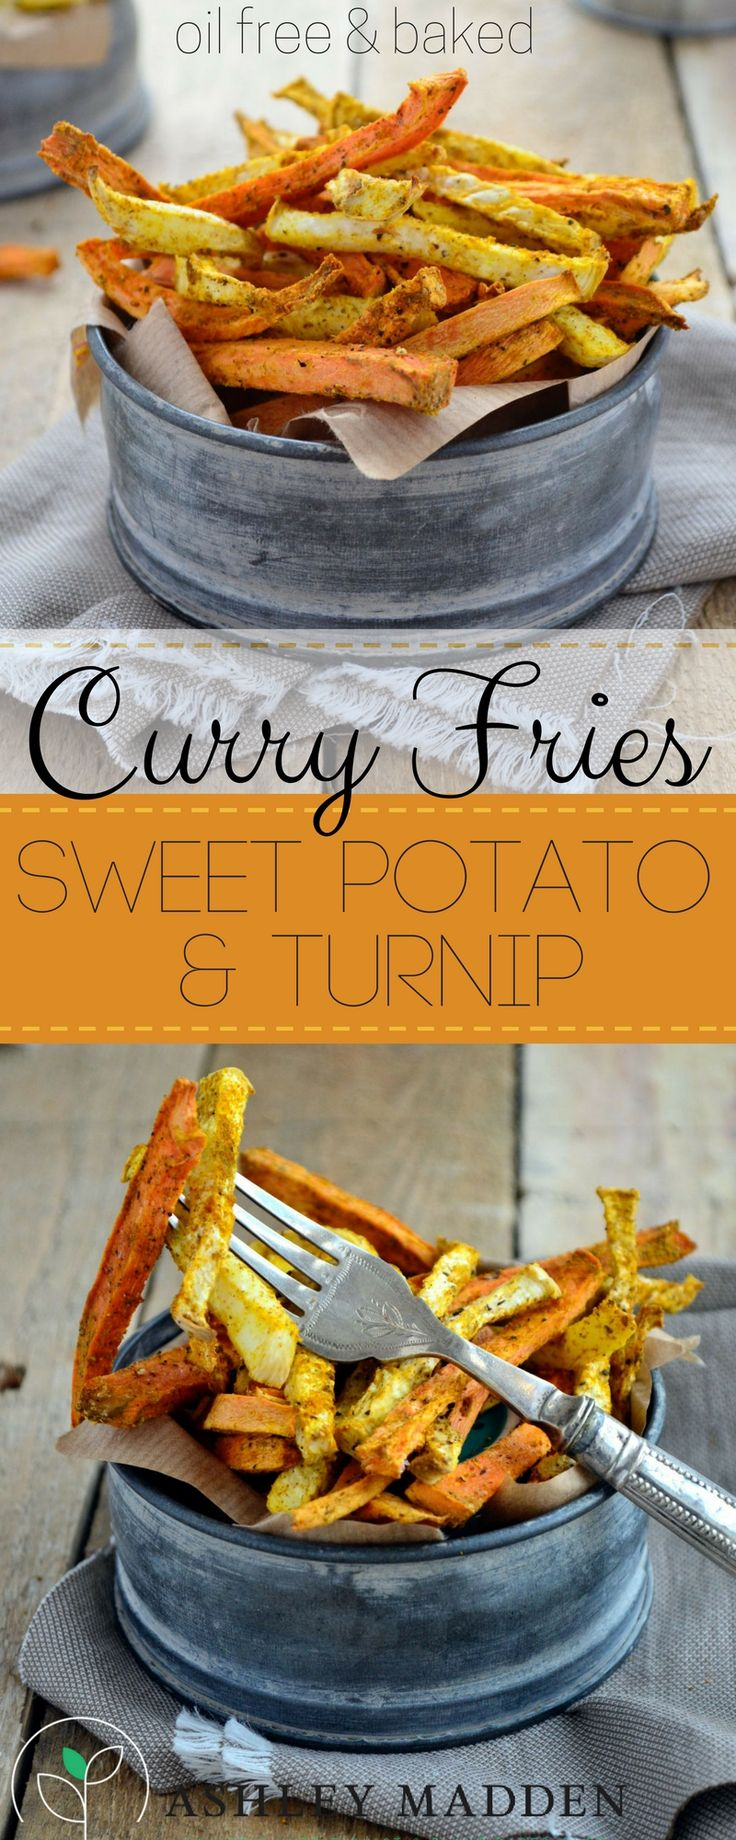 Root veggies make great fries, especially sweet potato and turnip! Topped in…